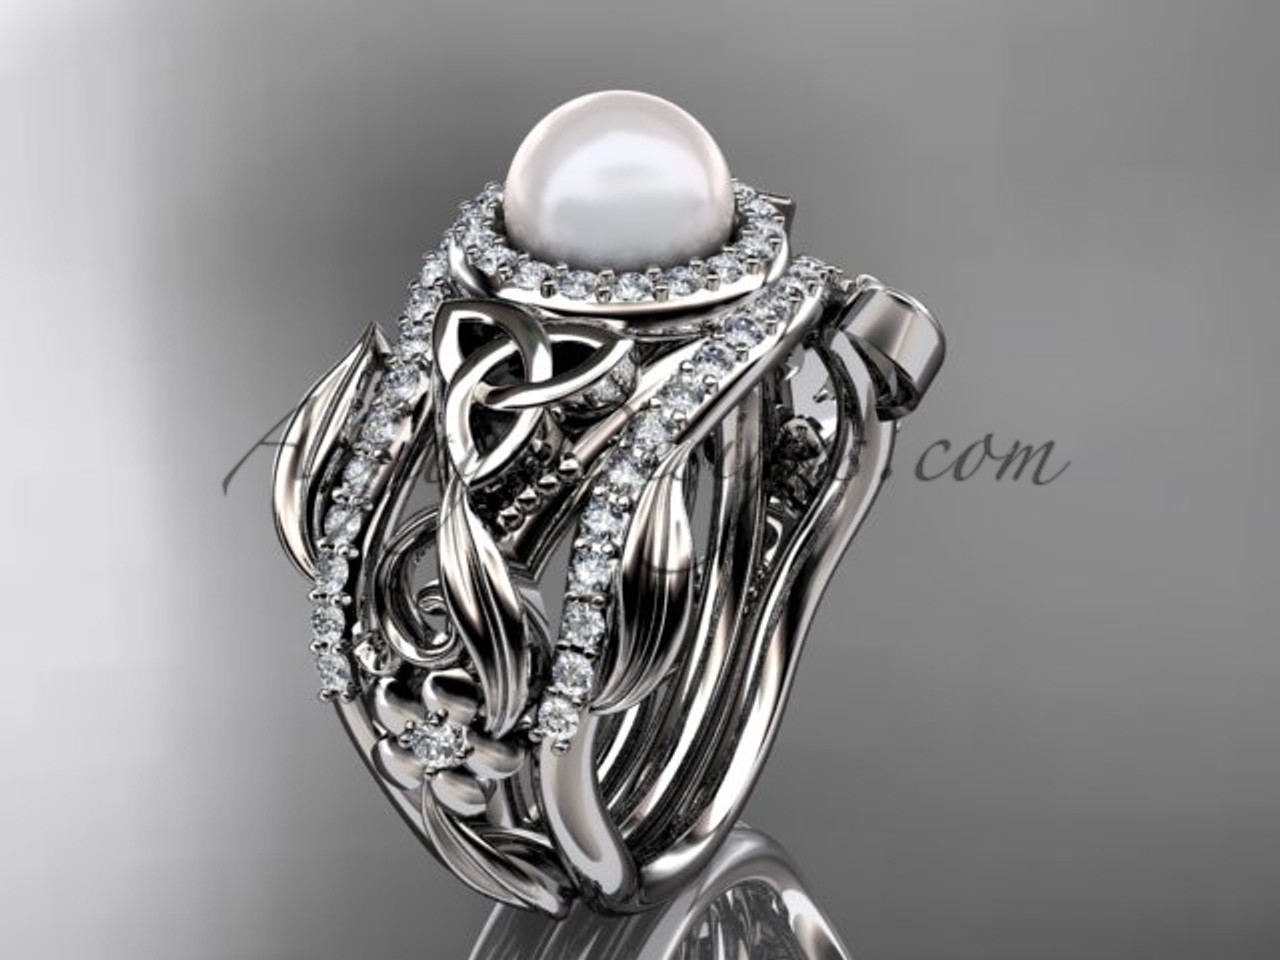 triquetra celtic pearl double band wedding ring white gold set ctbp7300s - Double Band Wedding Ring